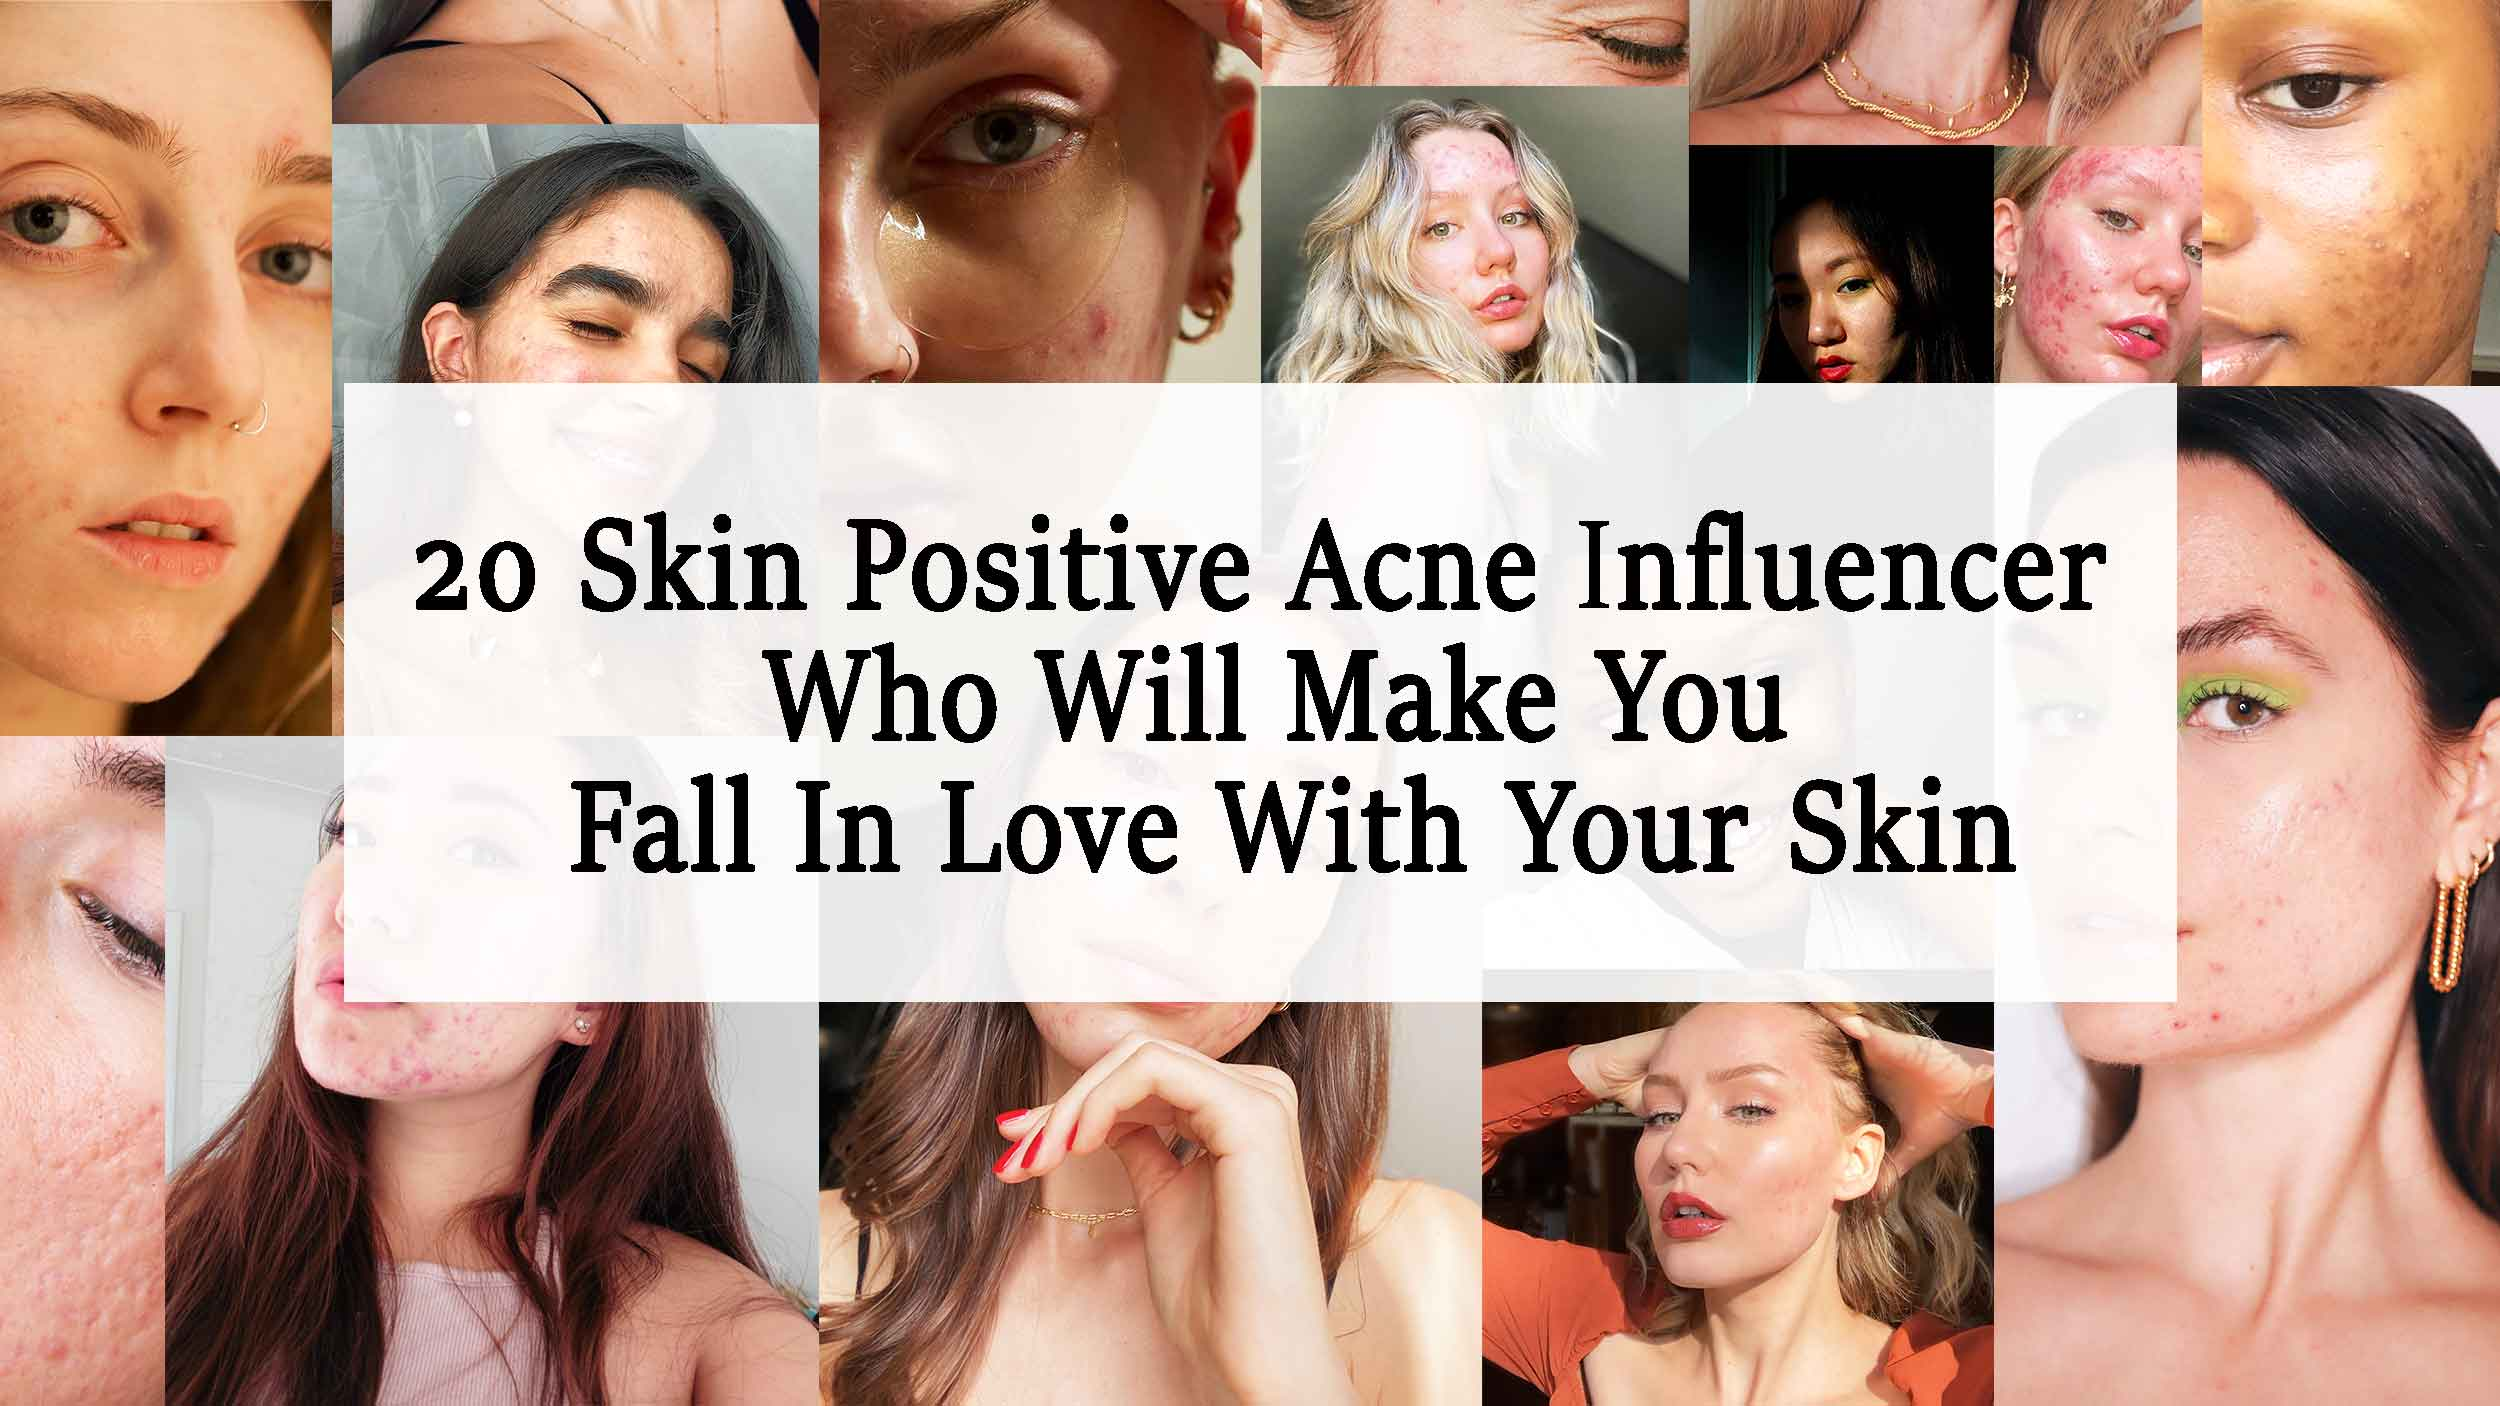 20+ Skin Positive Acne Influencer Who Will Make You Fall In Love With Your Skin